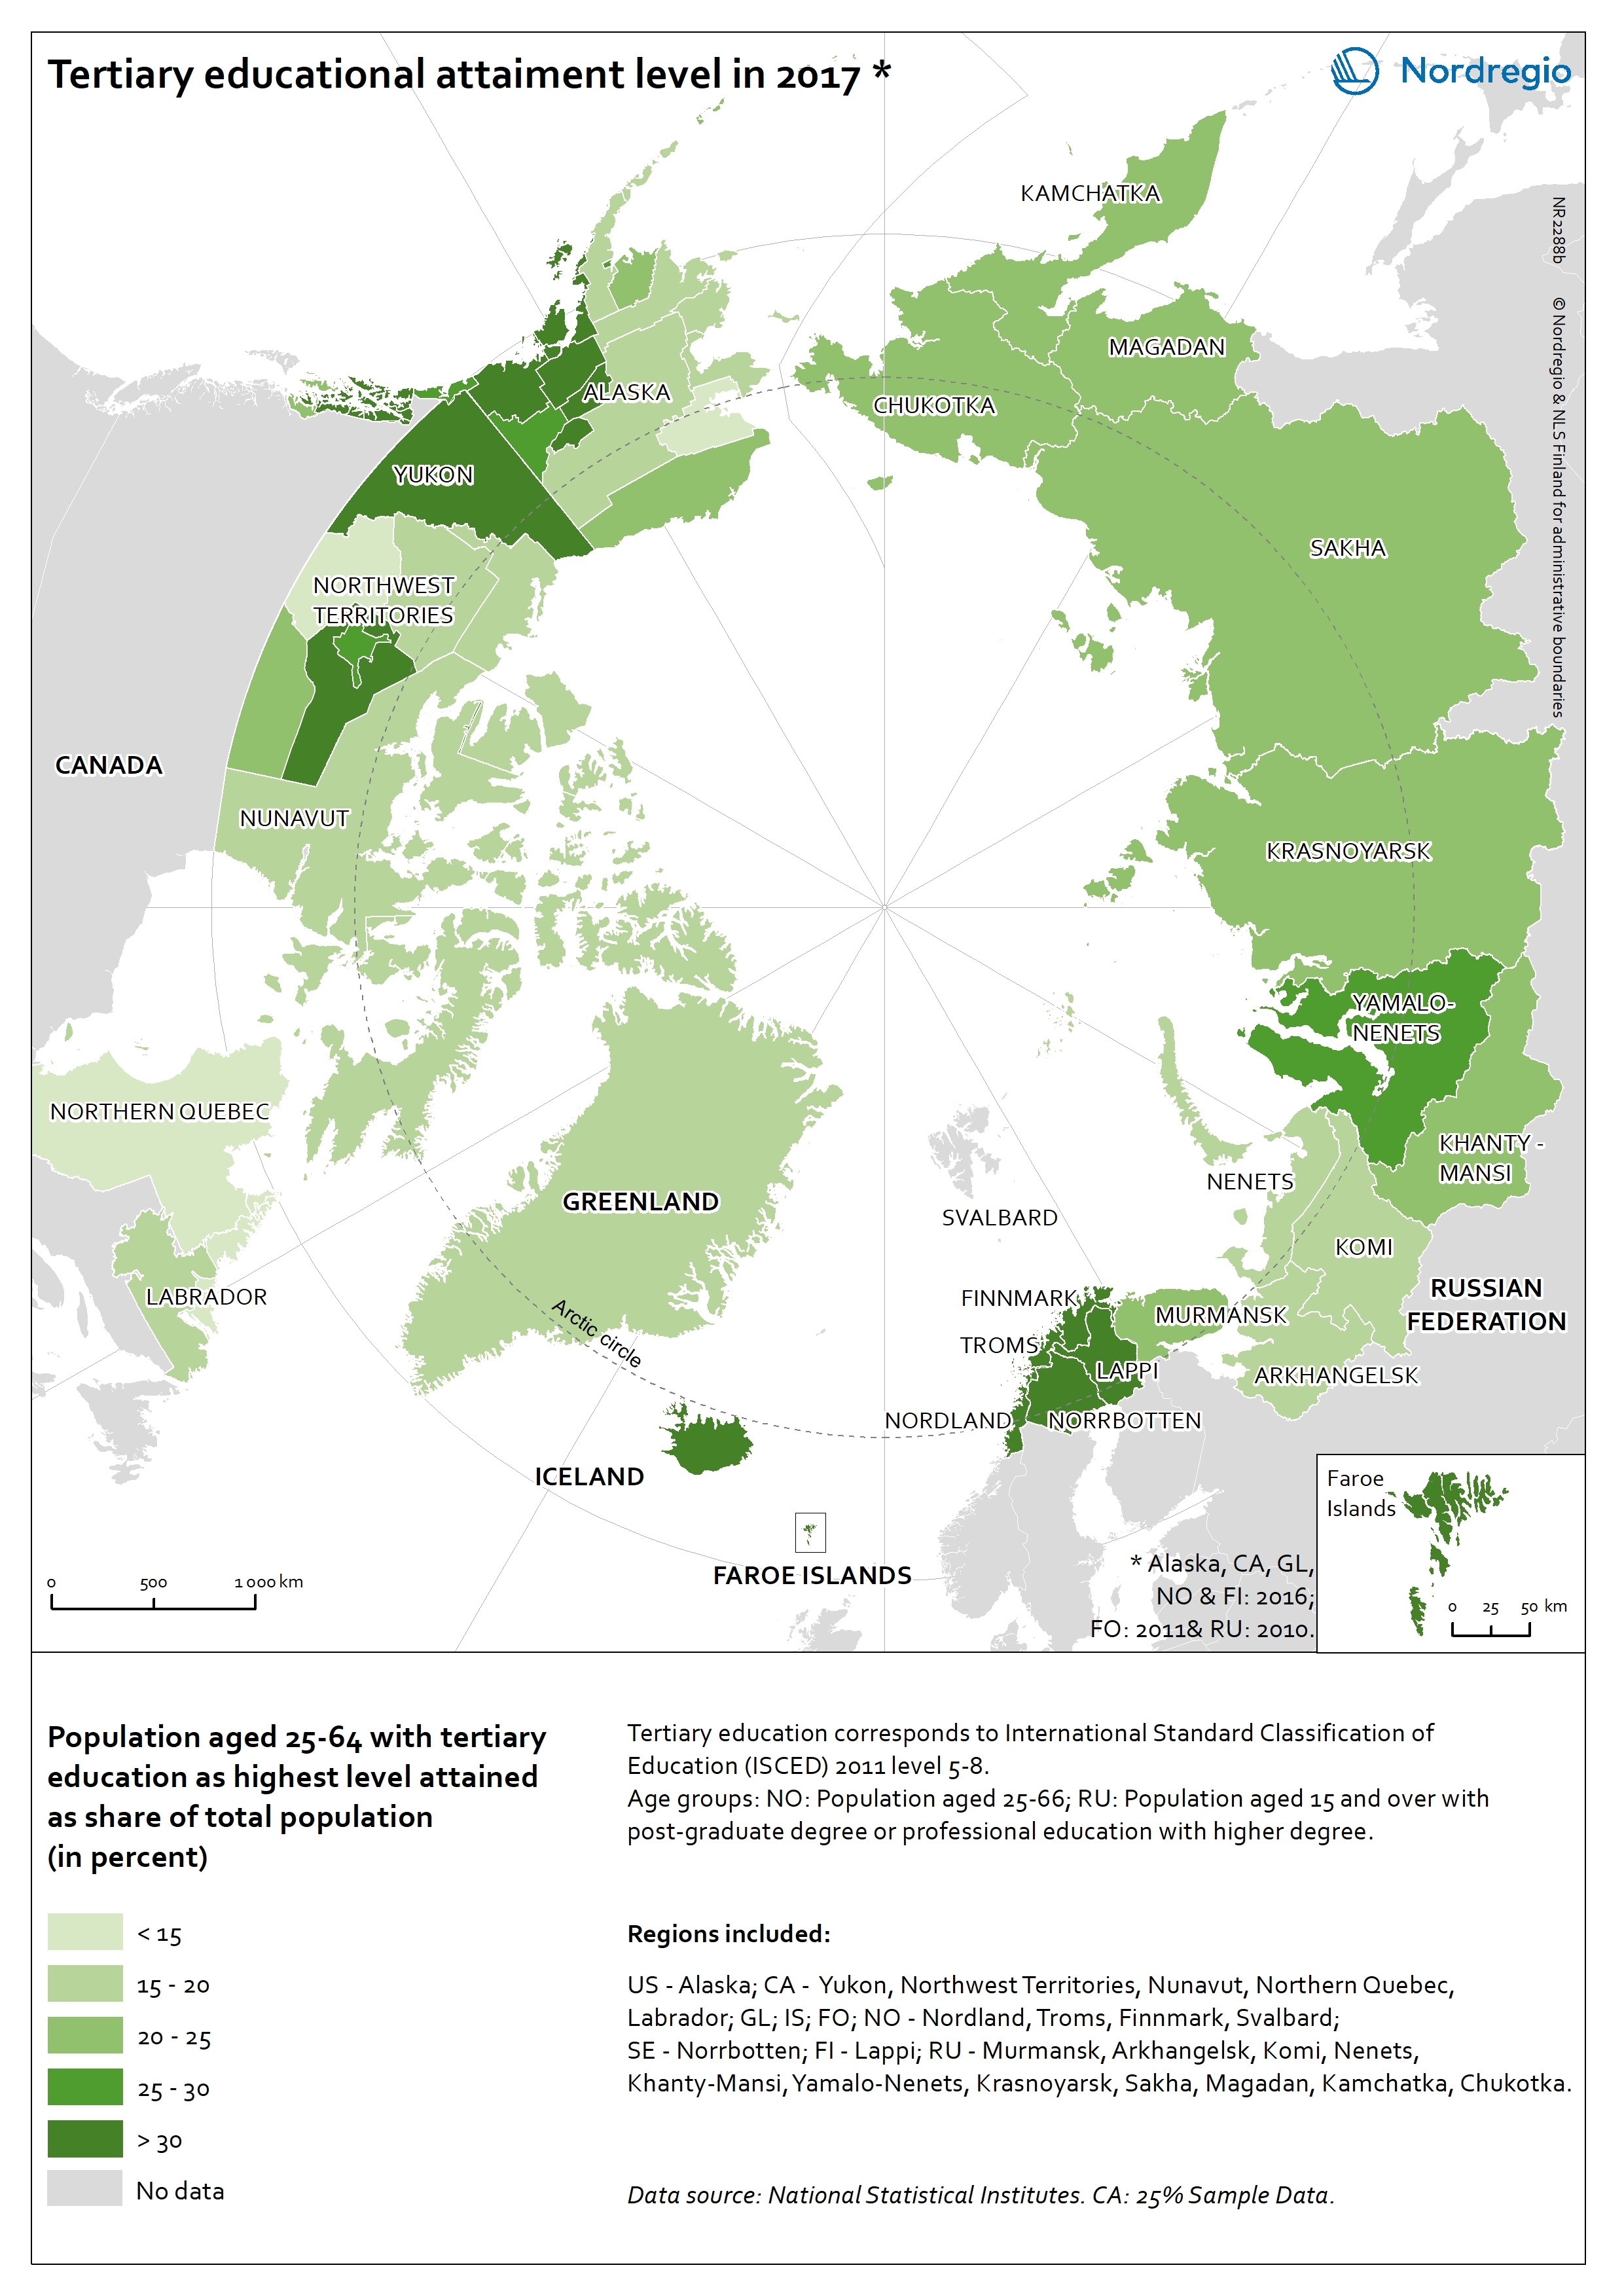 Map Of Northern Quebec Canada.Tertiary Educational Attainment Level In The Arctic Nordregio